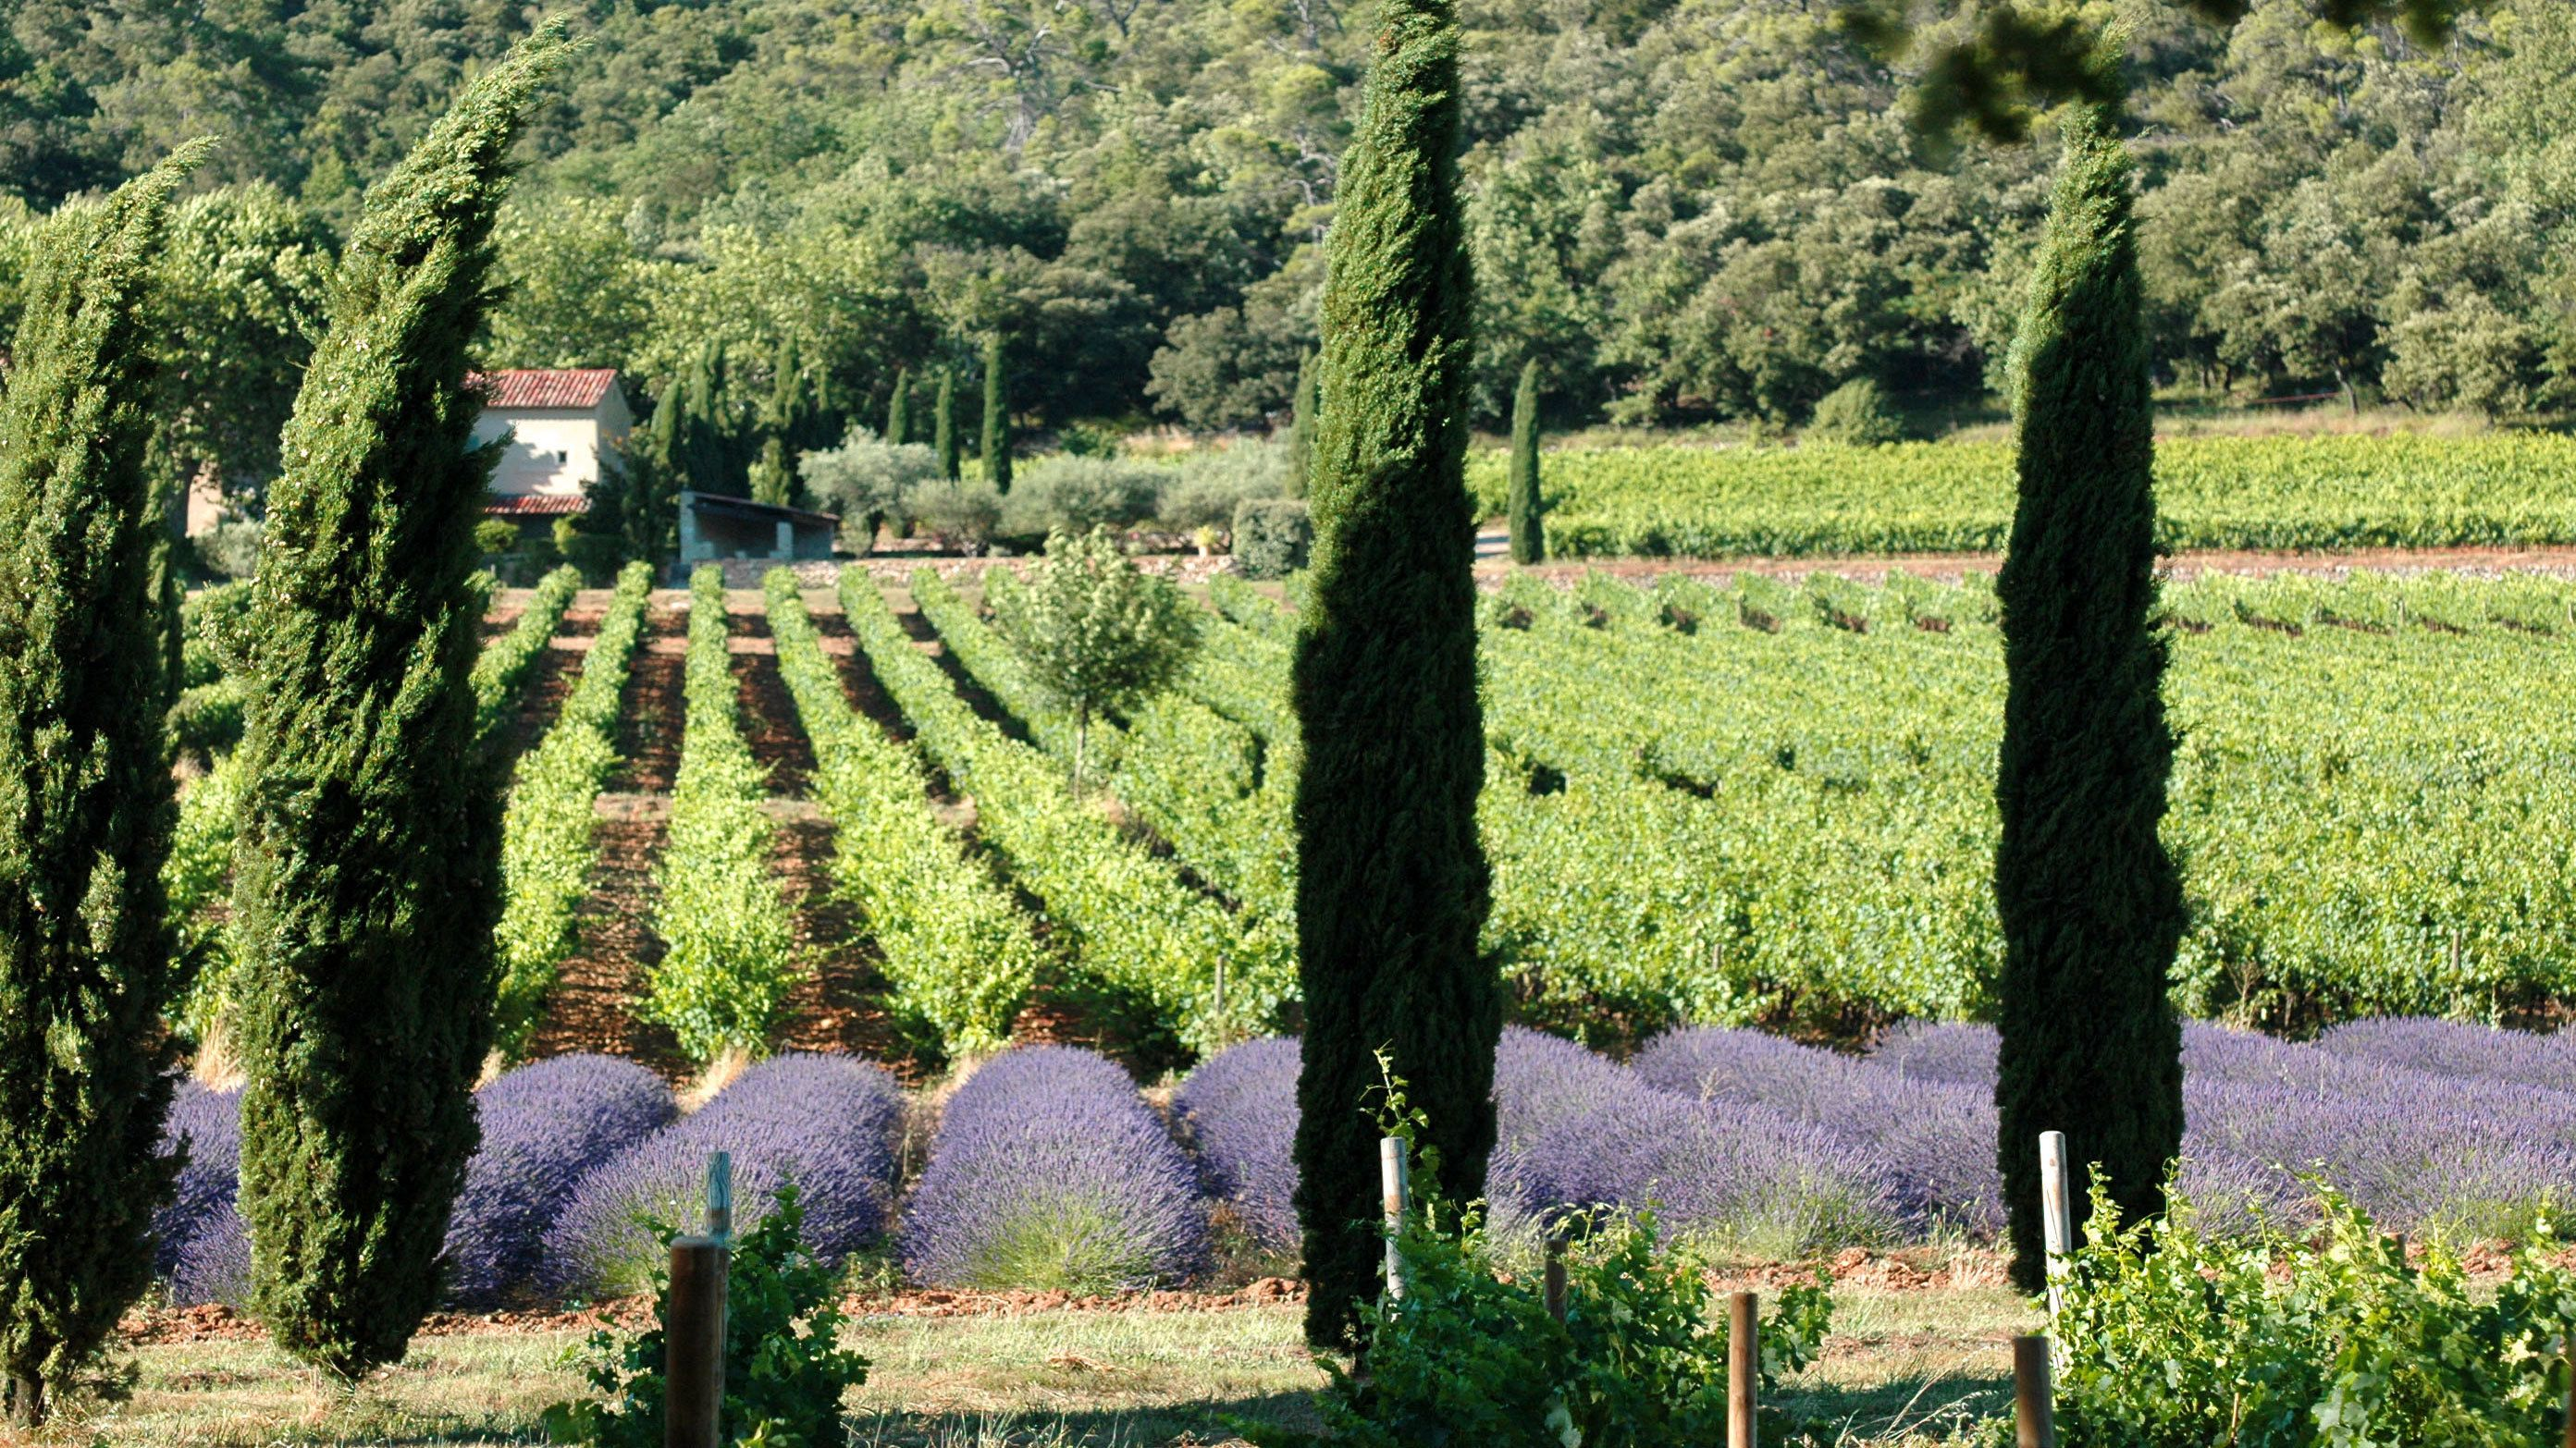 lavender fields and vineyard at Coteaux d'Aix Marseille